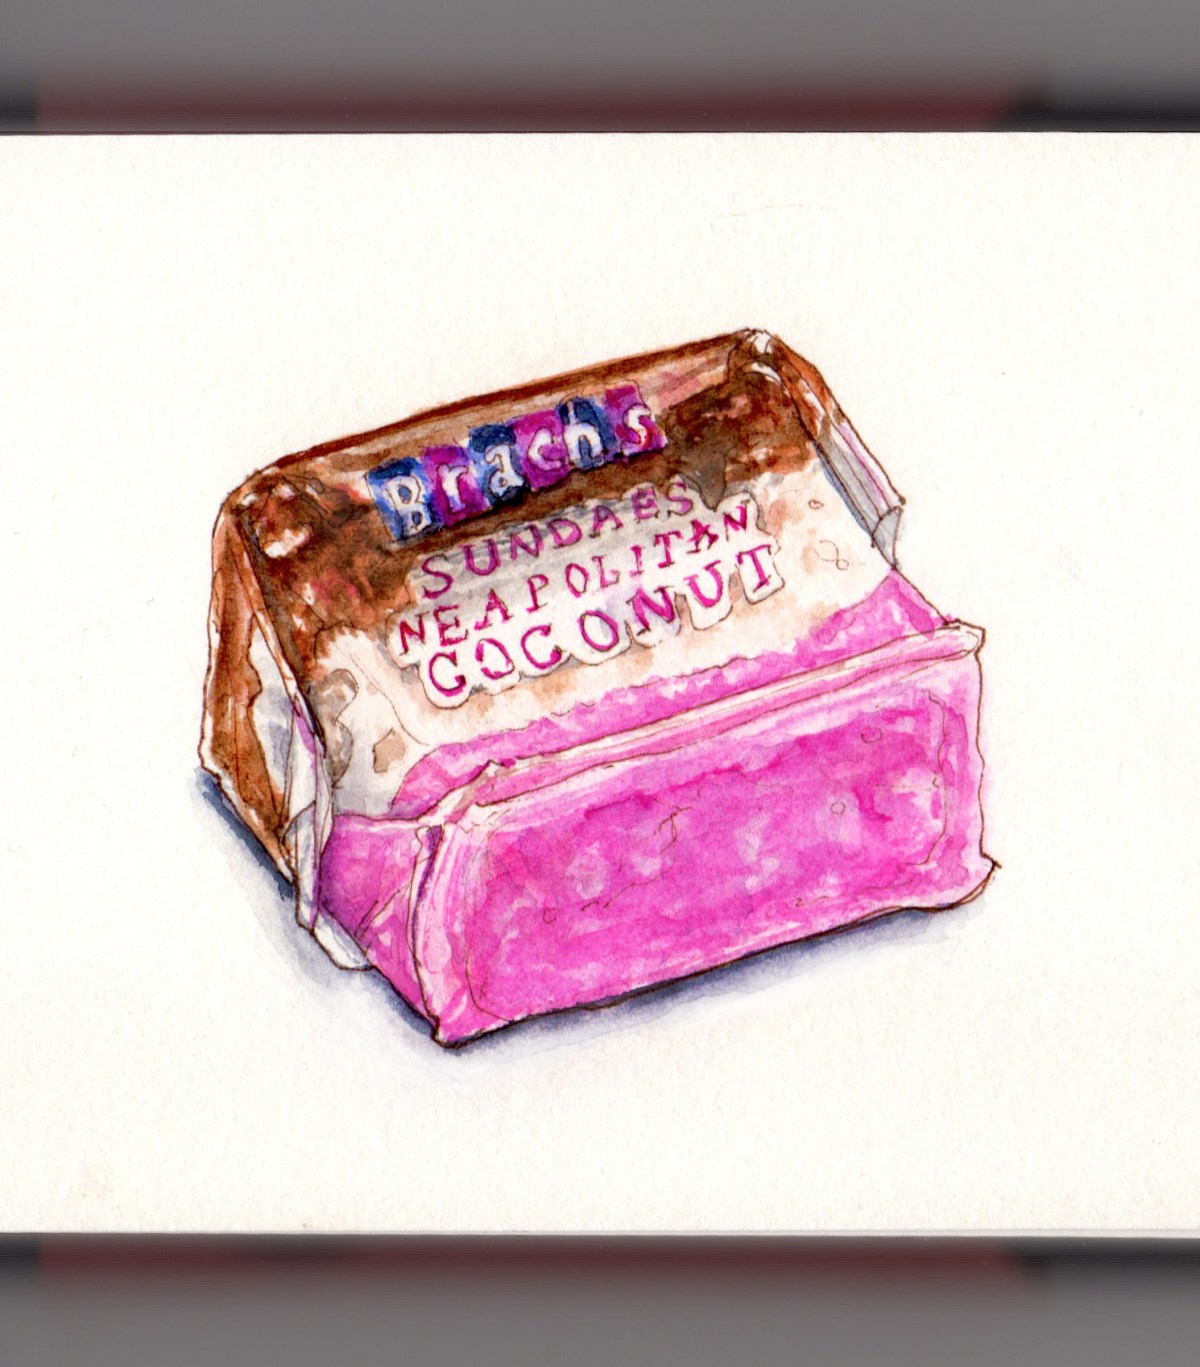 Day 4 - #WorldWatercolorGroup National Candy Day Brach's Sundaes Neapolitan Coconut Candy